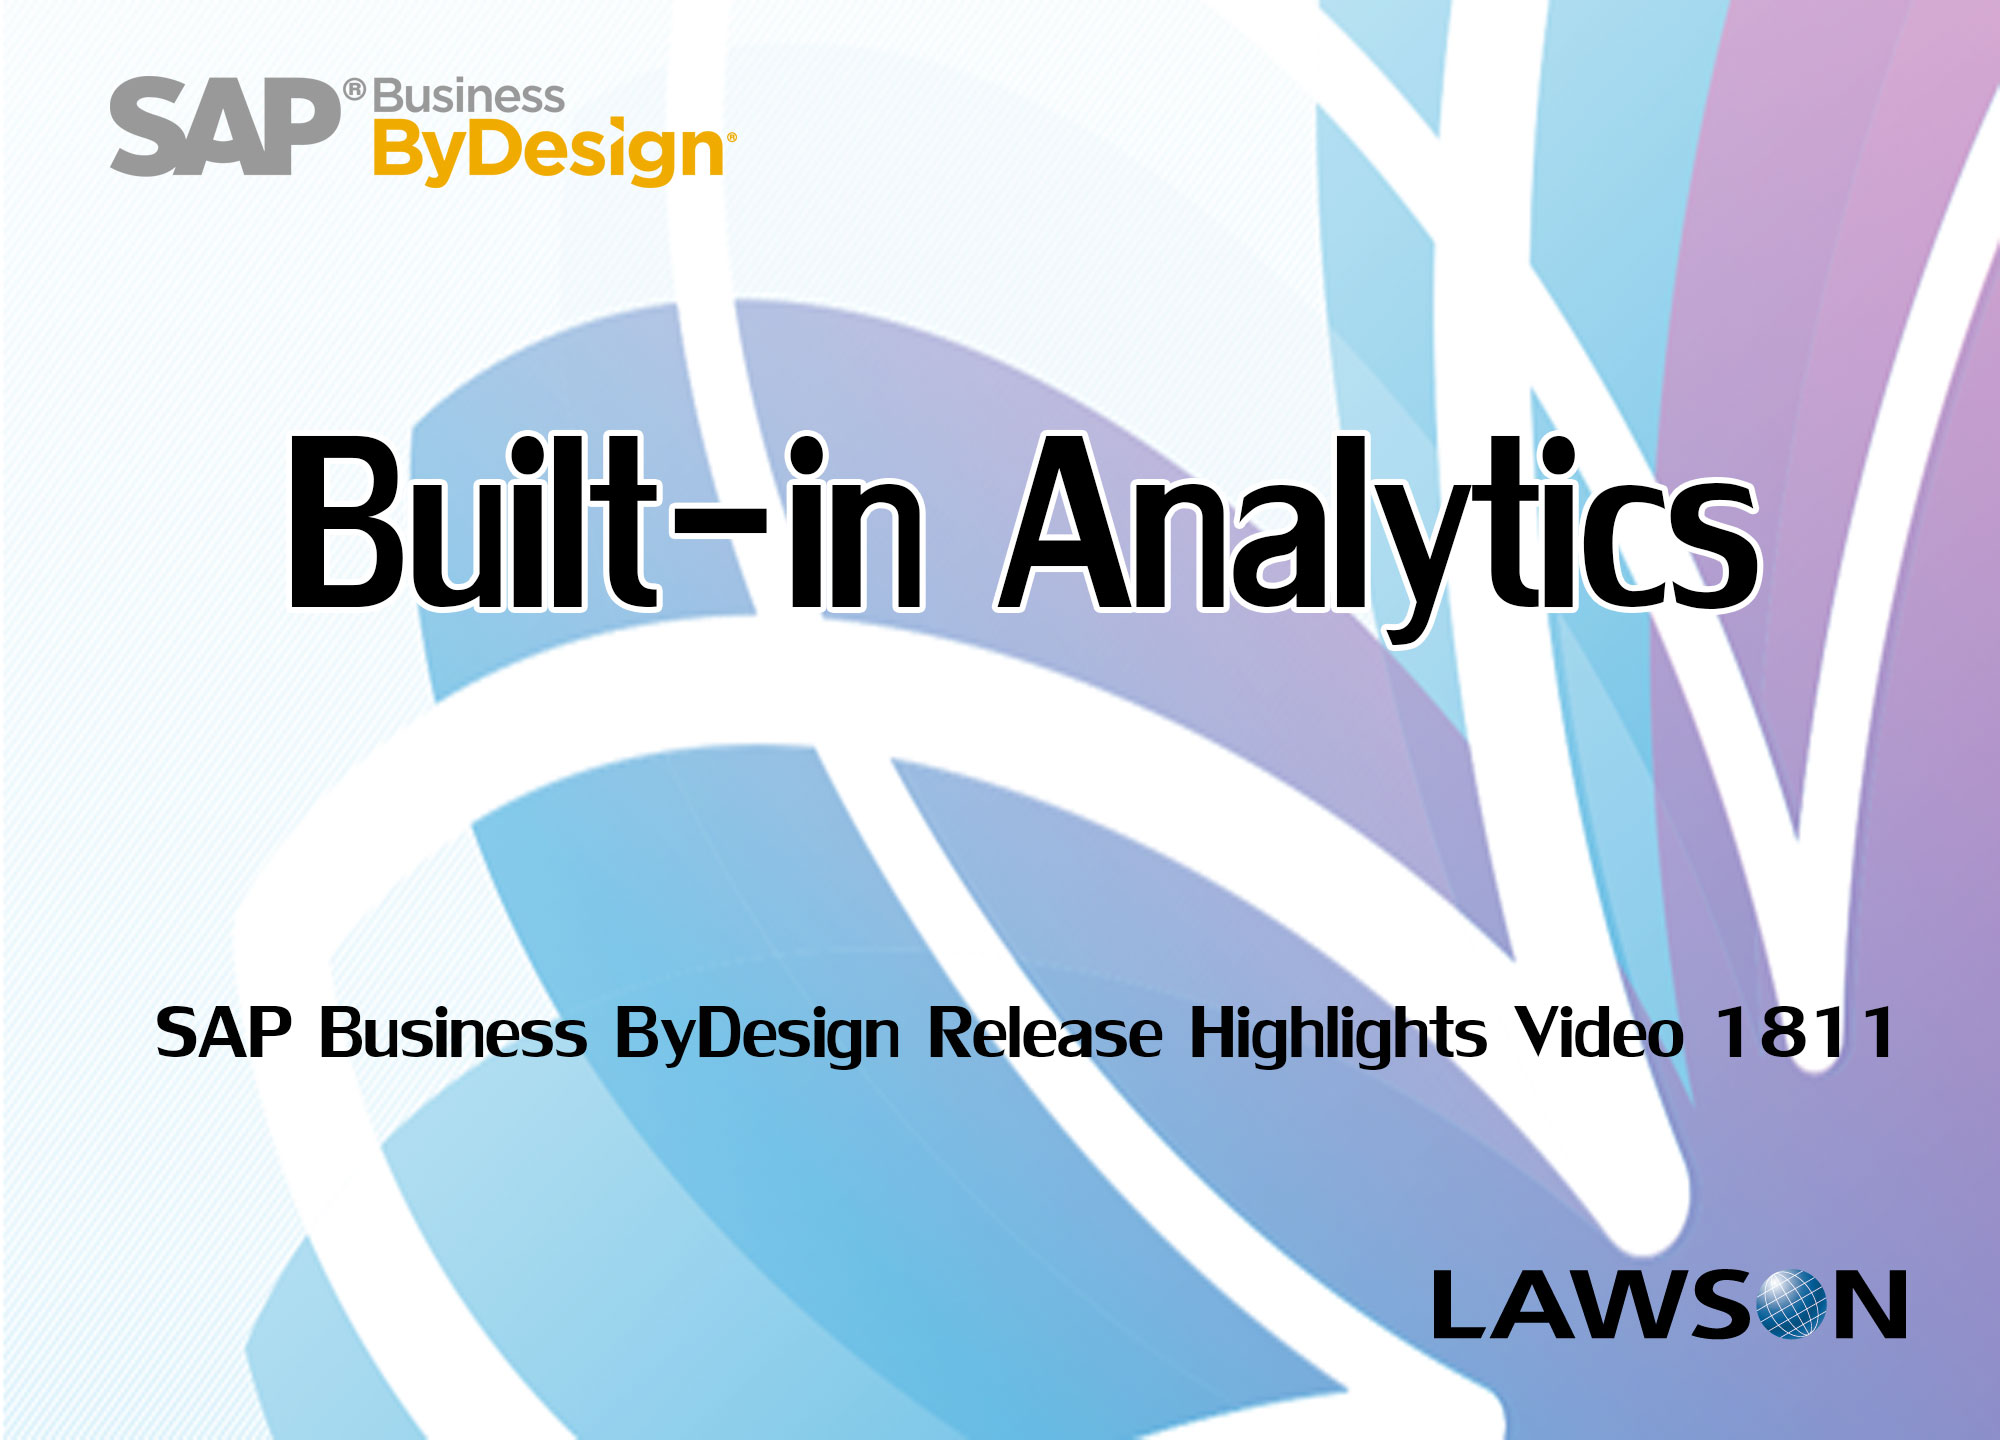 Built-in Analytics